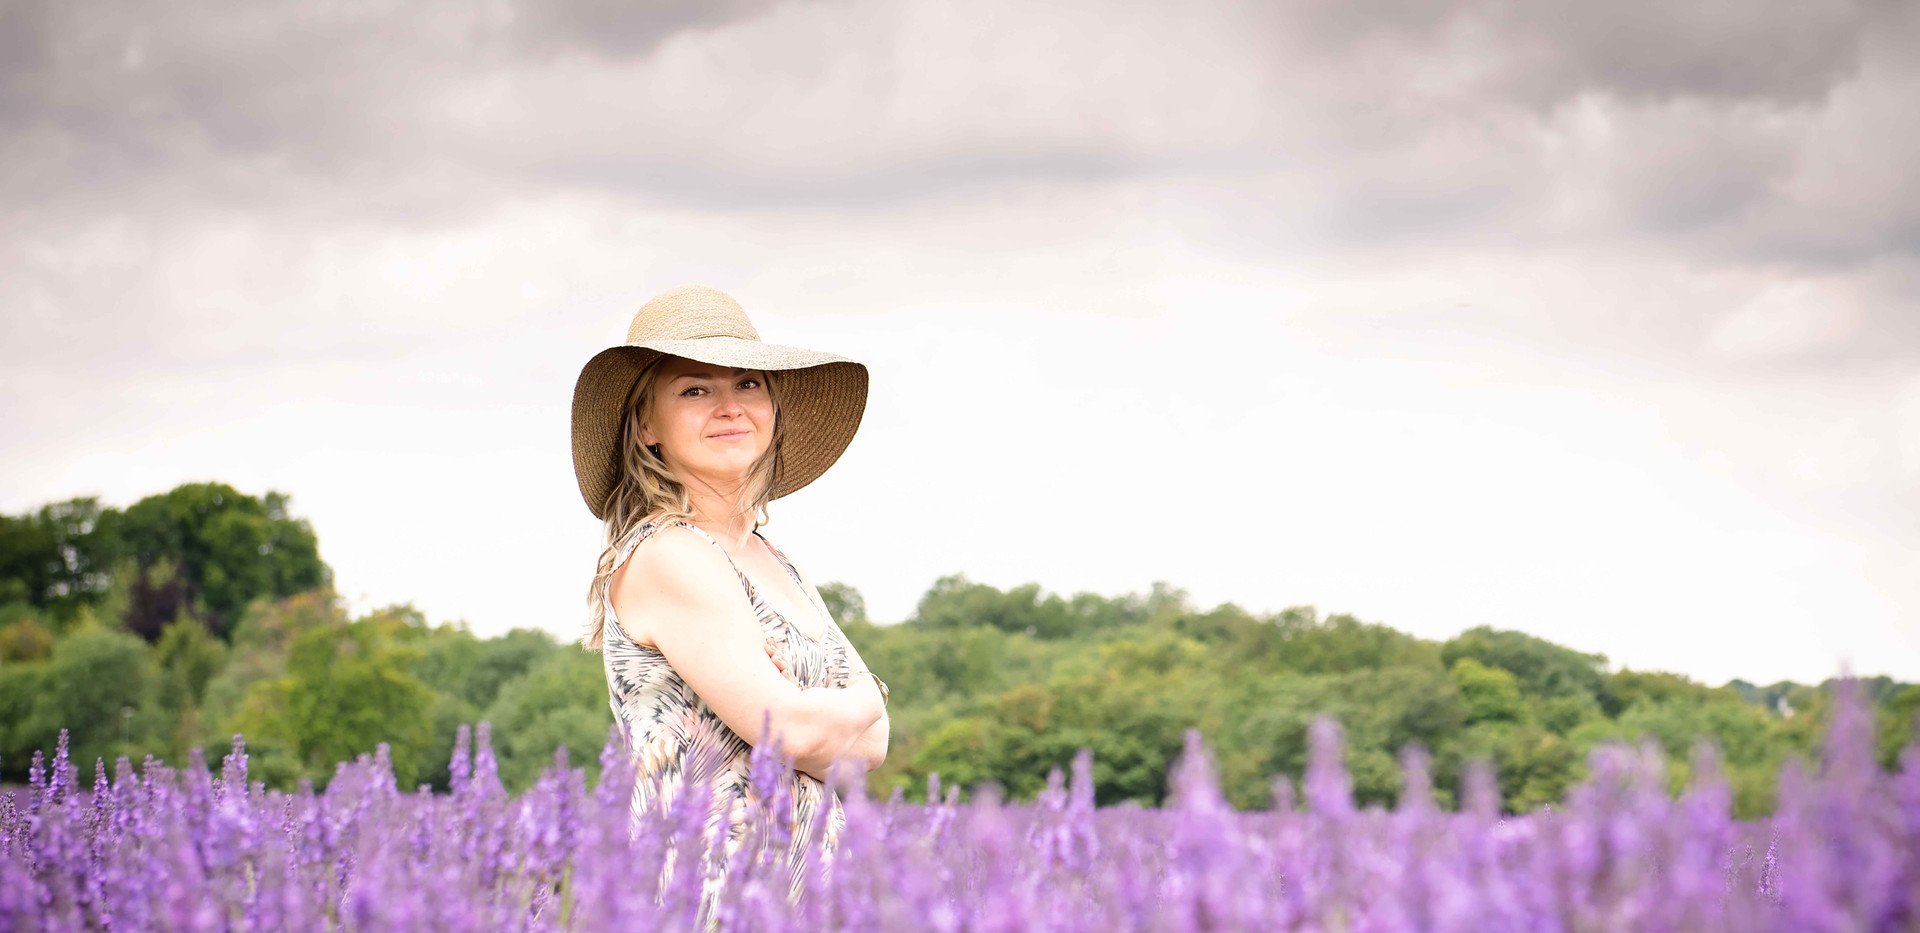 Lady In The Lavender